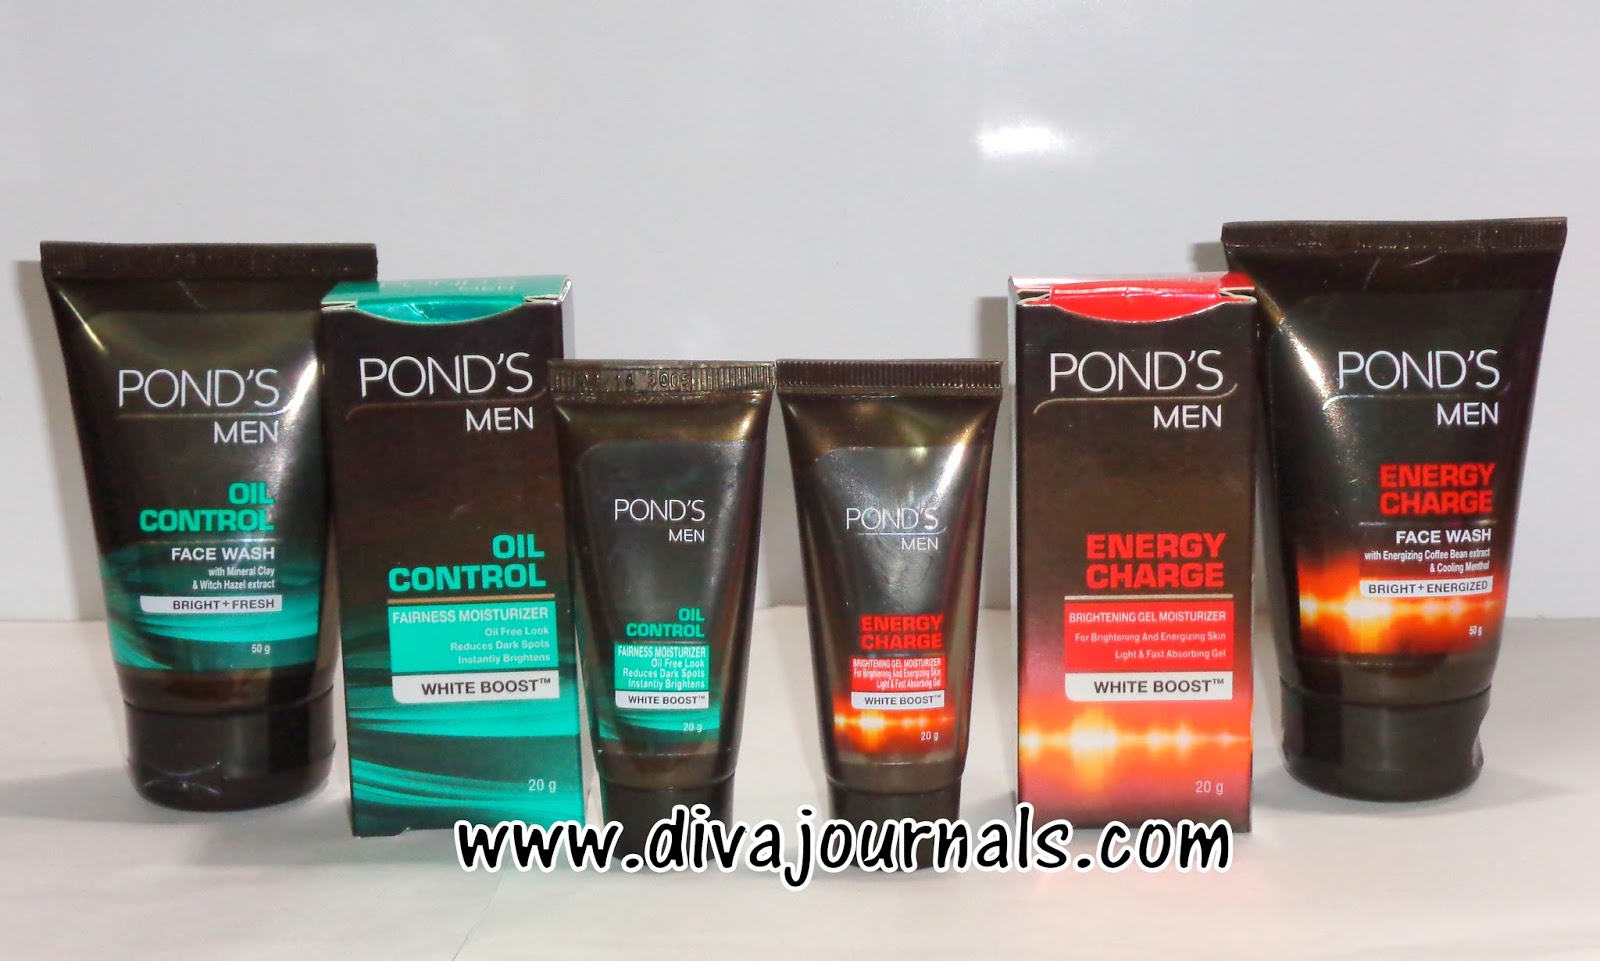 Ponds Men Oil Control & Energy Charge Face wash-Moisturiser Review